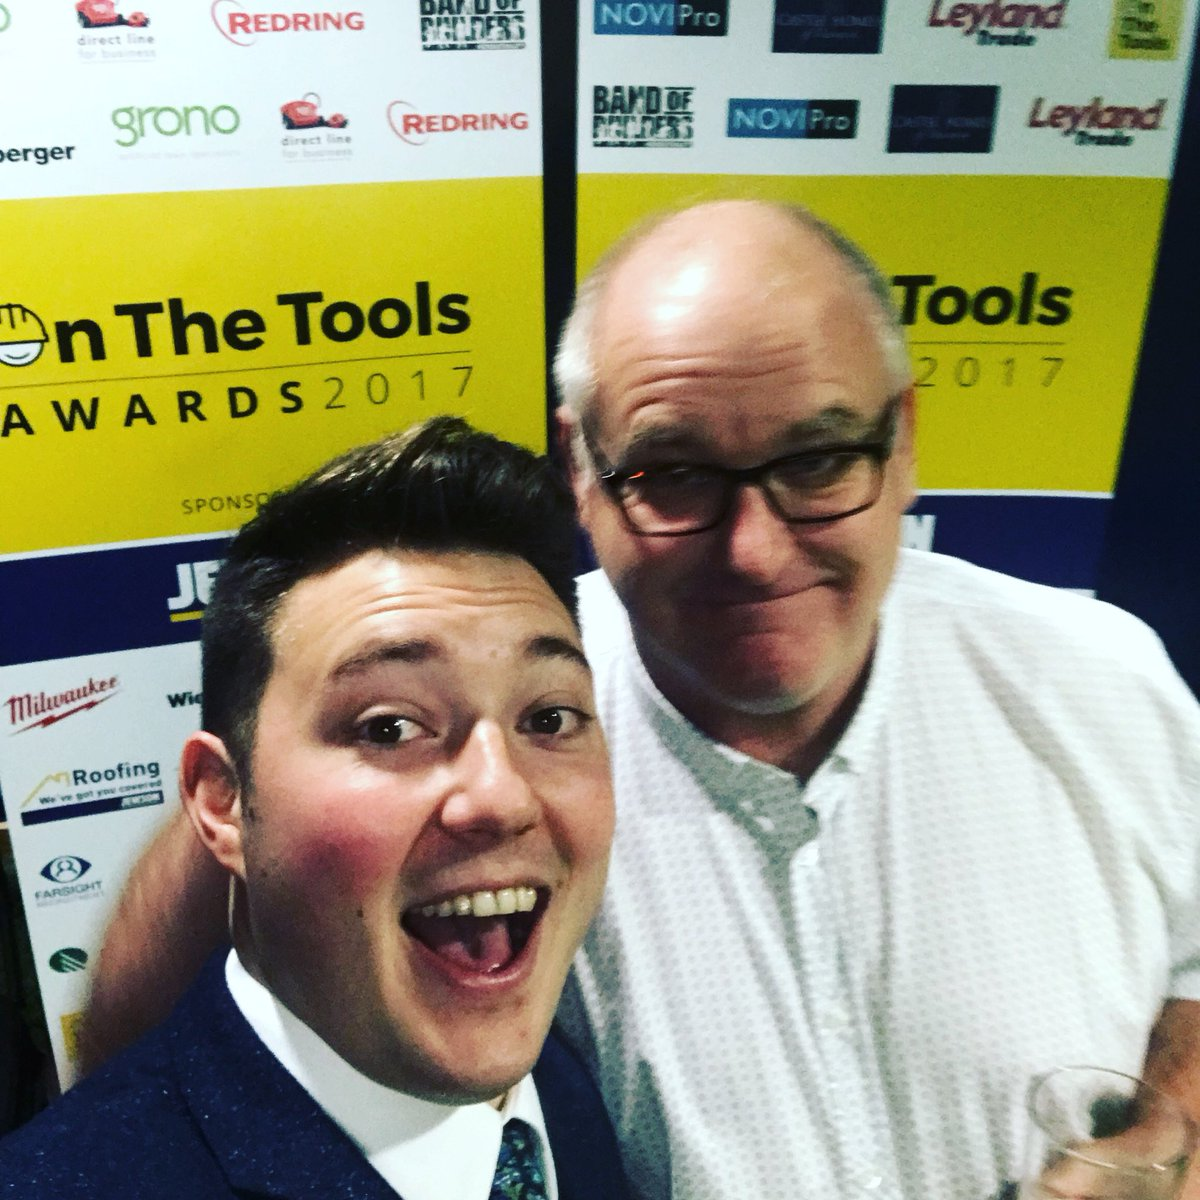 We are at the On The Tools Awards tonight. Seen some celebrities in the construction industry such as @TibbySingh #OTTAwards2017 pic.twitter.com/XMHquEZfYq